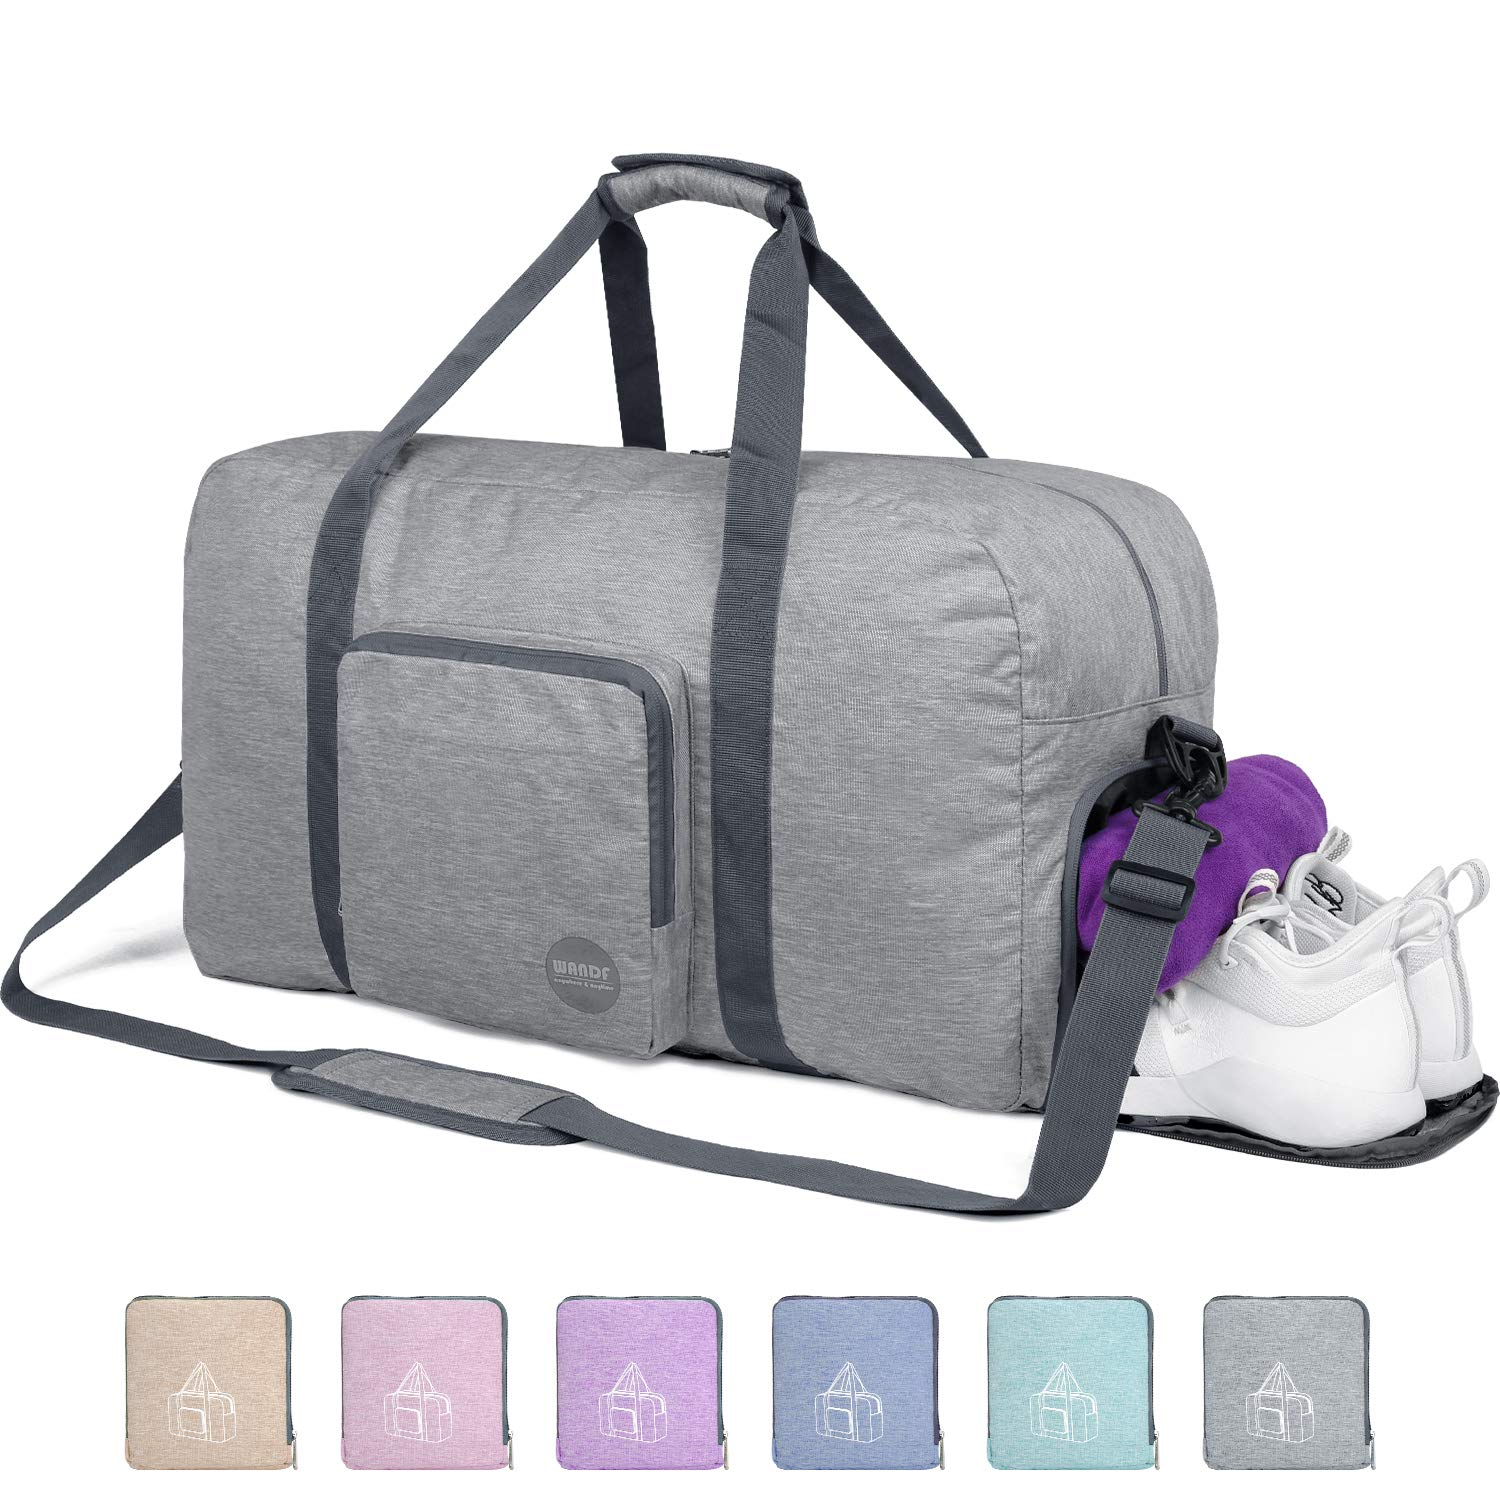 24'' Foldable Duffle Bag 60L for Travel Gym Sports Packable Lightweight Luggage Duffel Water-resistant By WANDF (Light Grey 24'', 24 inches (60 Liter)) by WANDF